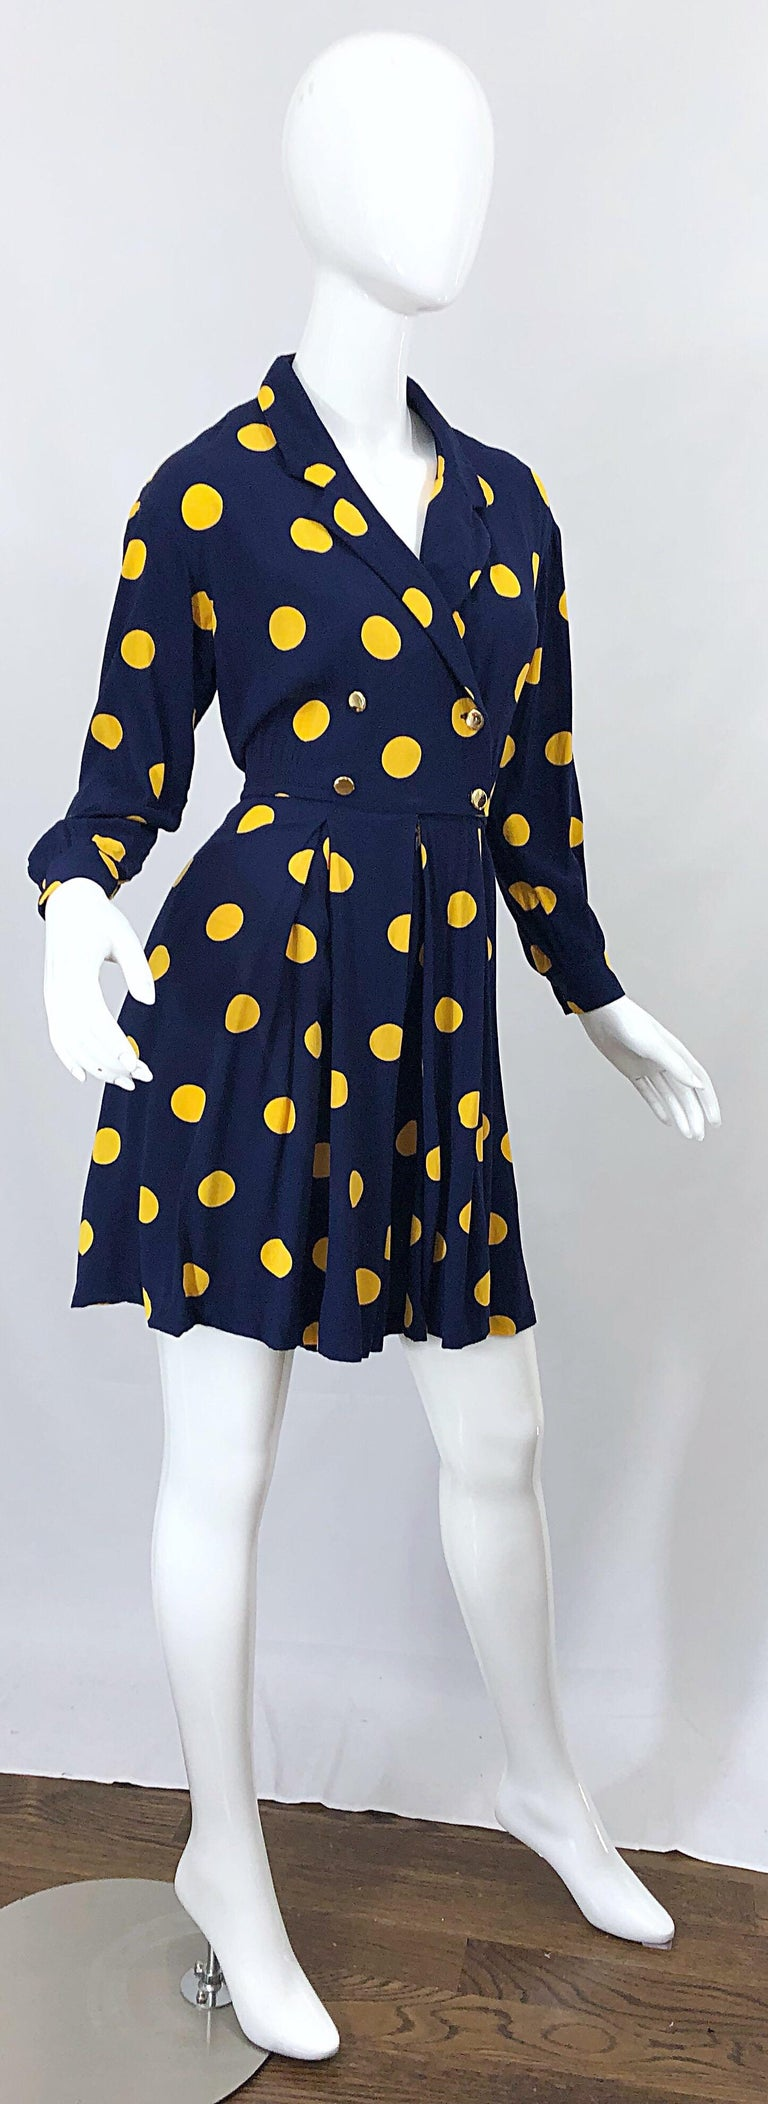 Size 8 Romper Late 1980s Navy Blue and Yellow Polka Dot 80s Vintage Romper For Sale 7